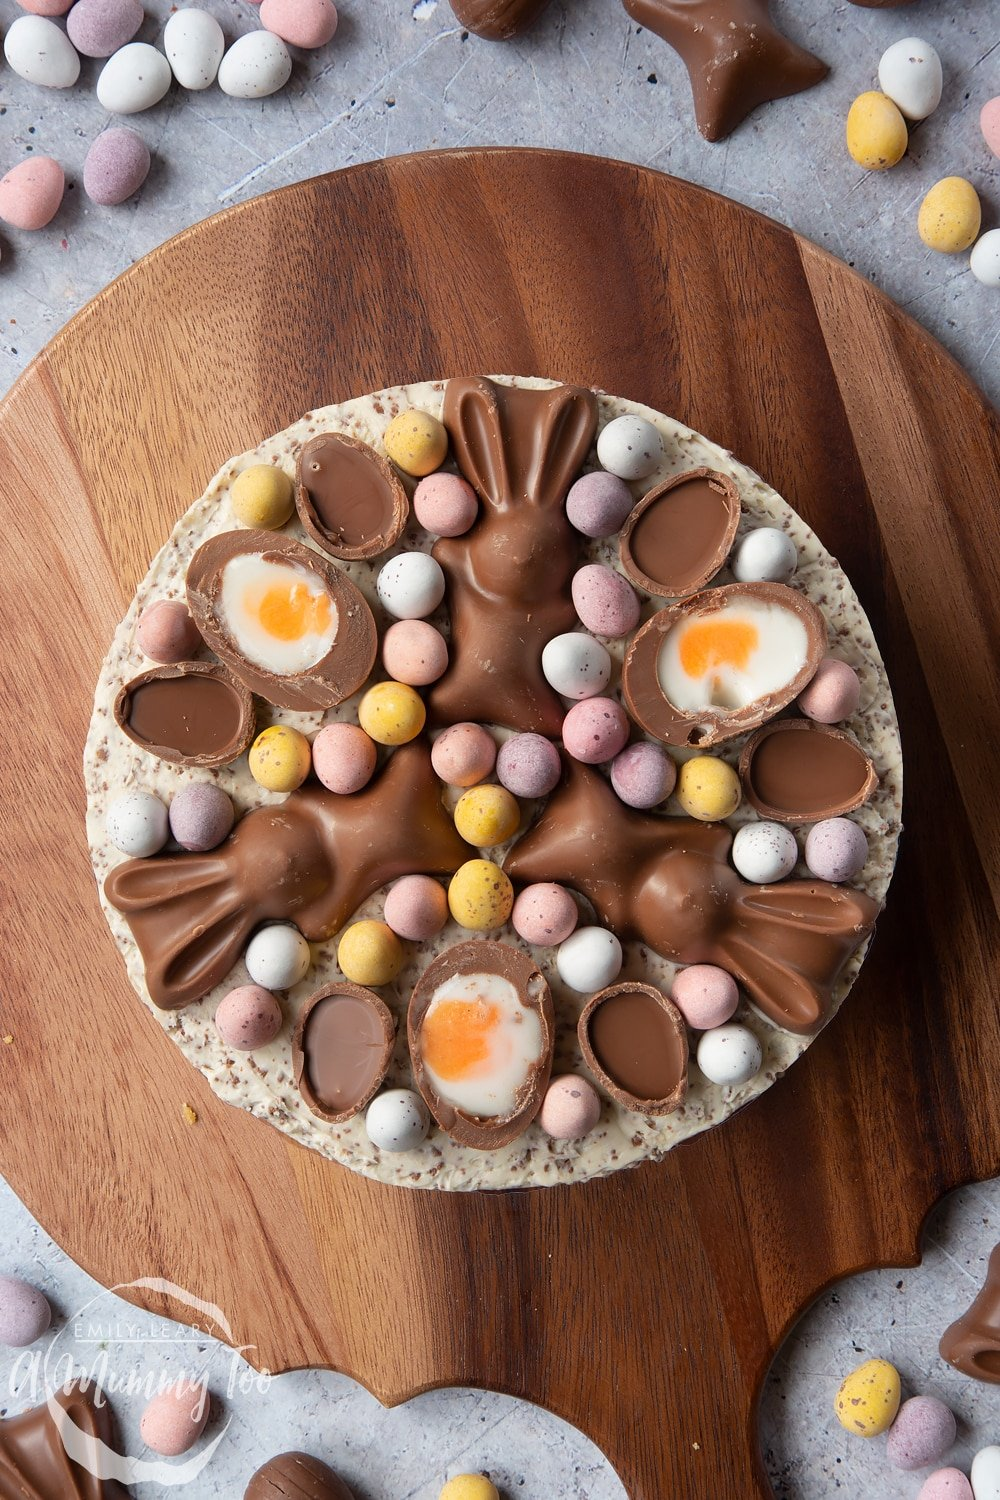 No-bake Easter cheesecake shown from above. The cheesecake is topped with mini chocolate eggs, creme eggs and chocolate bunnies.